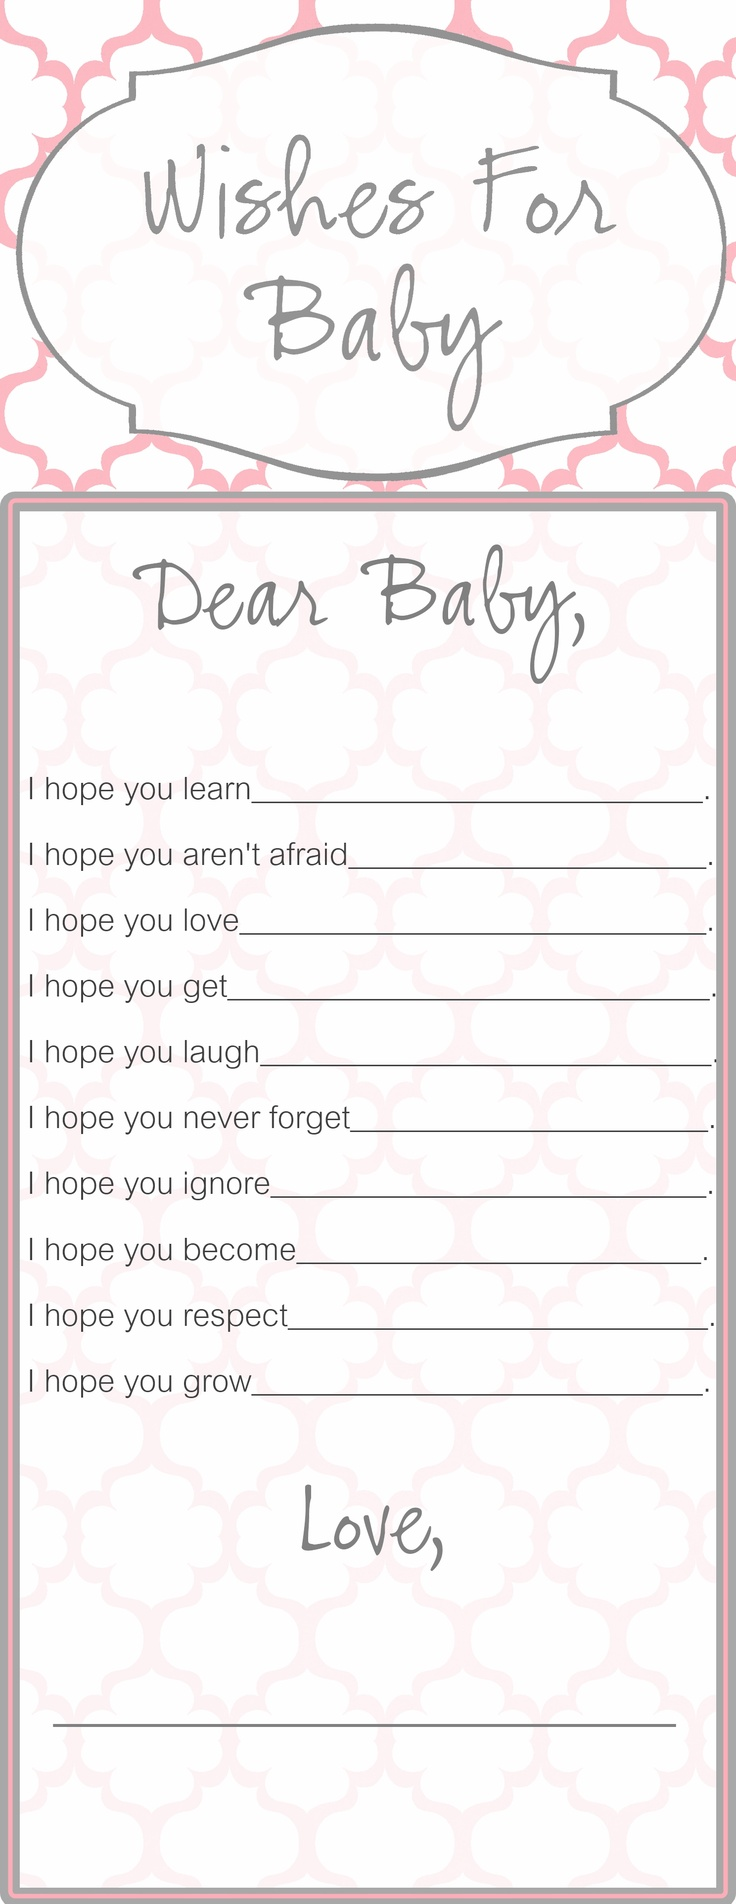 Wishes for baby template that i created for a baby shower for Wishes for baby template printable